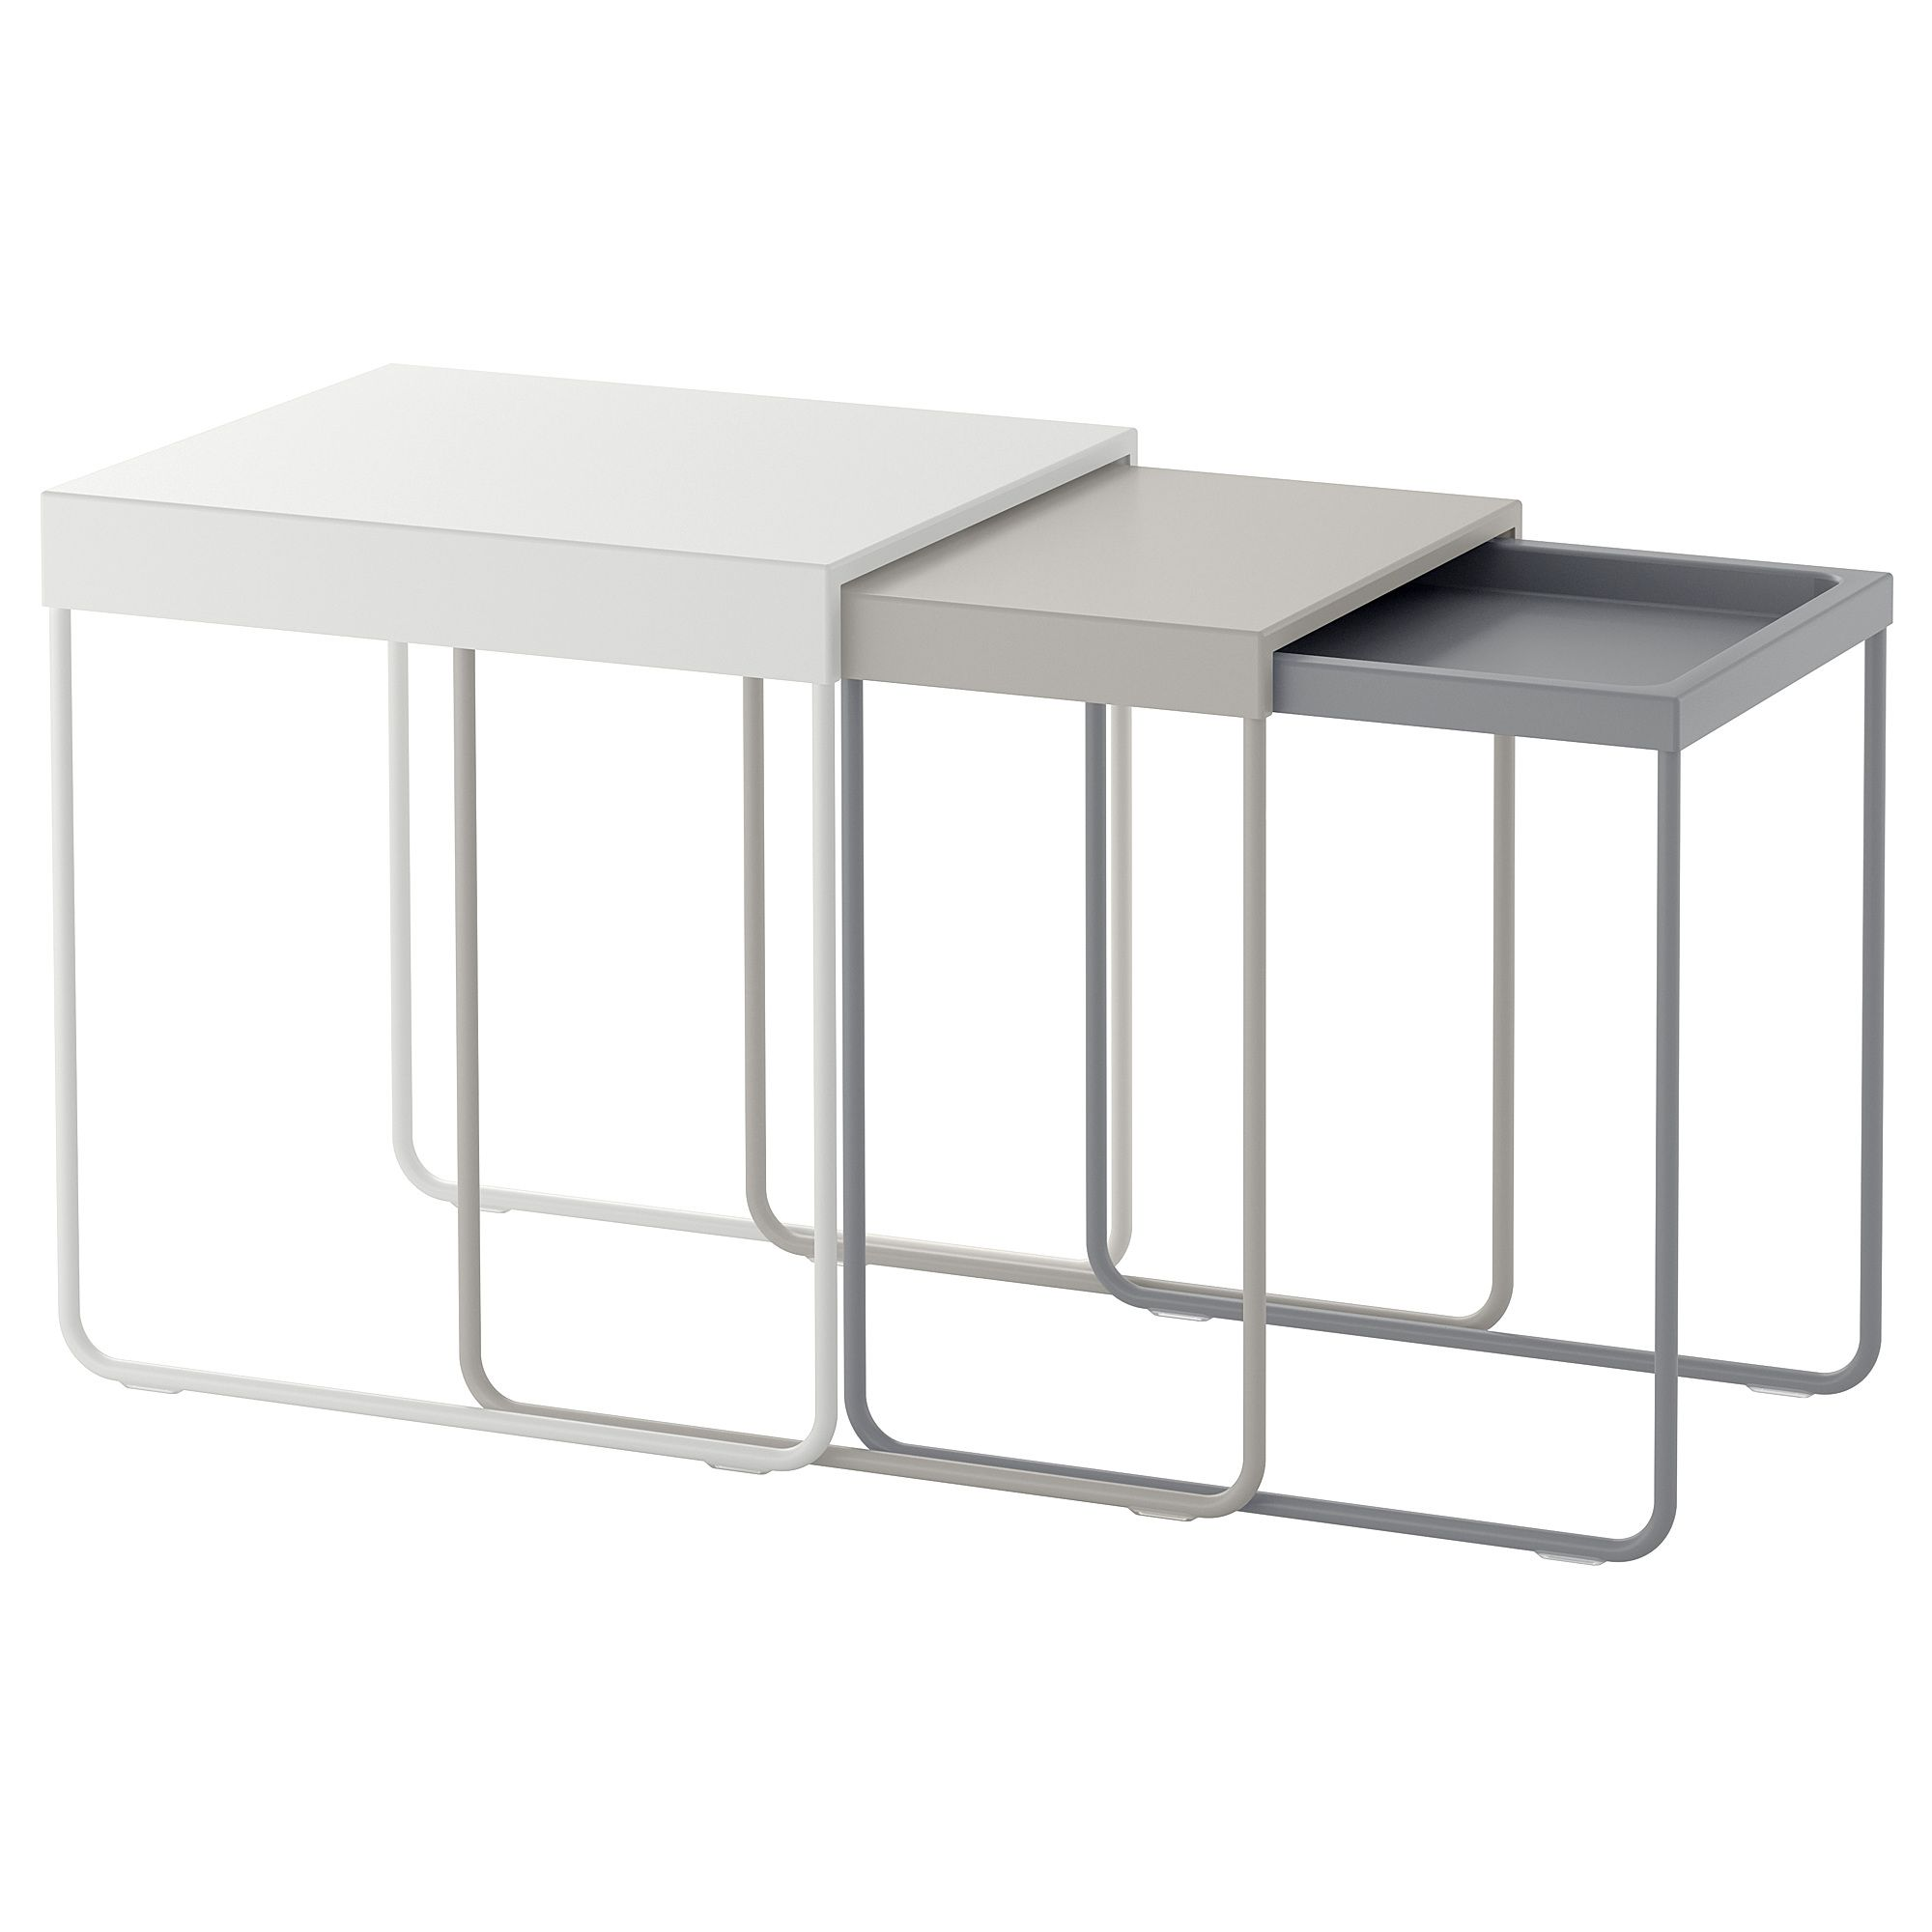 Lustre Ikea A Monter Tables Gigognes Lot De 3 Granboda Riviera Chic En 2019